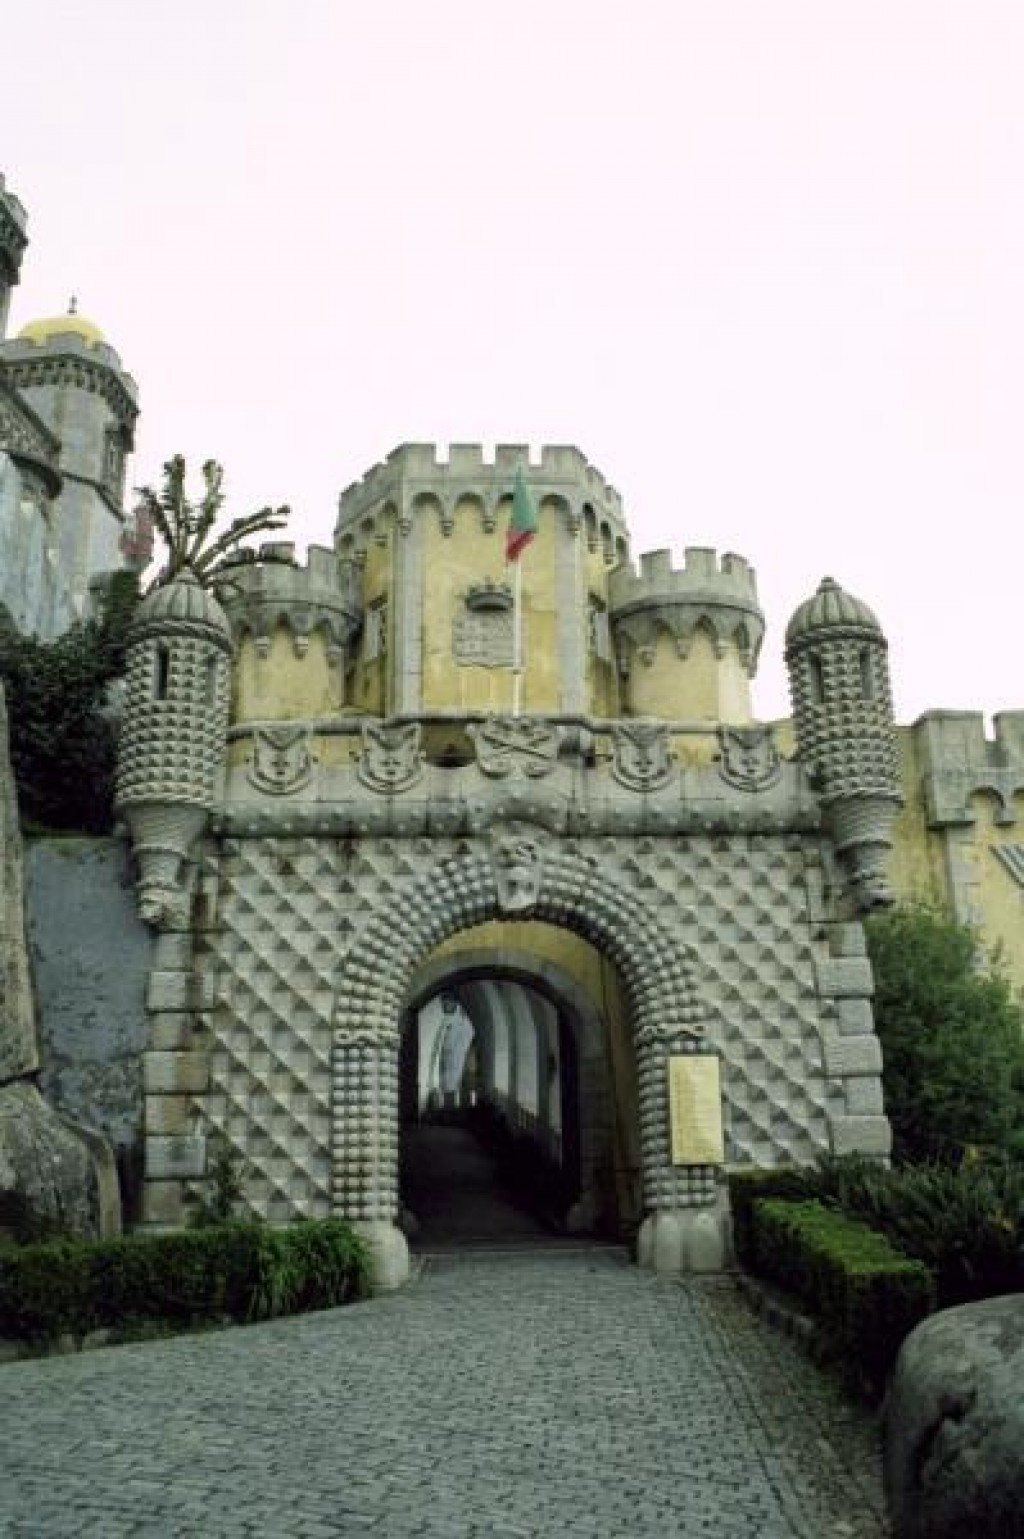 The Palacio Nacional da Pena was built in the 1840s by a Bavarian prince, and really looks like a Disney creation.  He was apparently homesick, and managed to mix Portuguese and German styles.